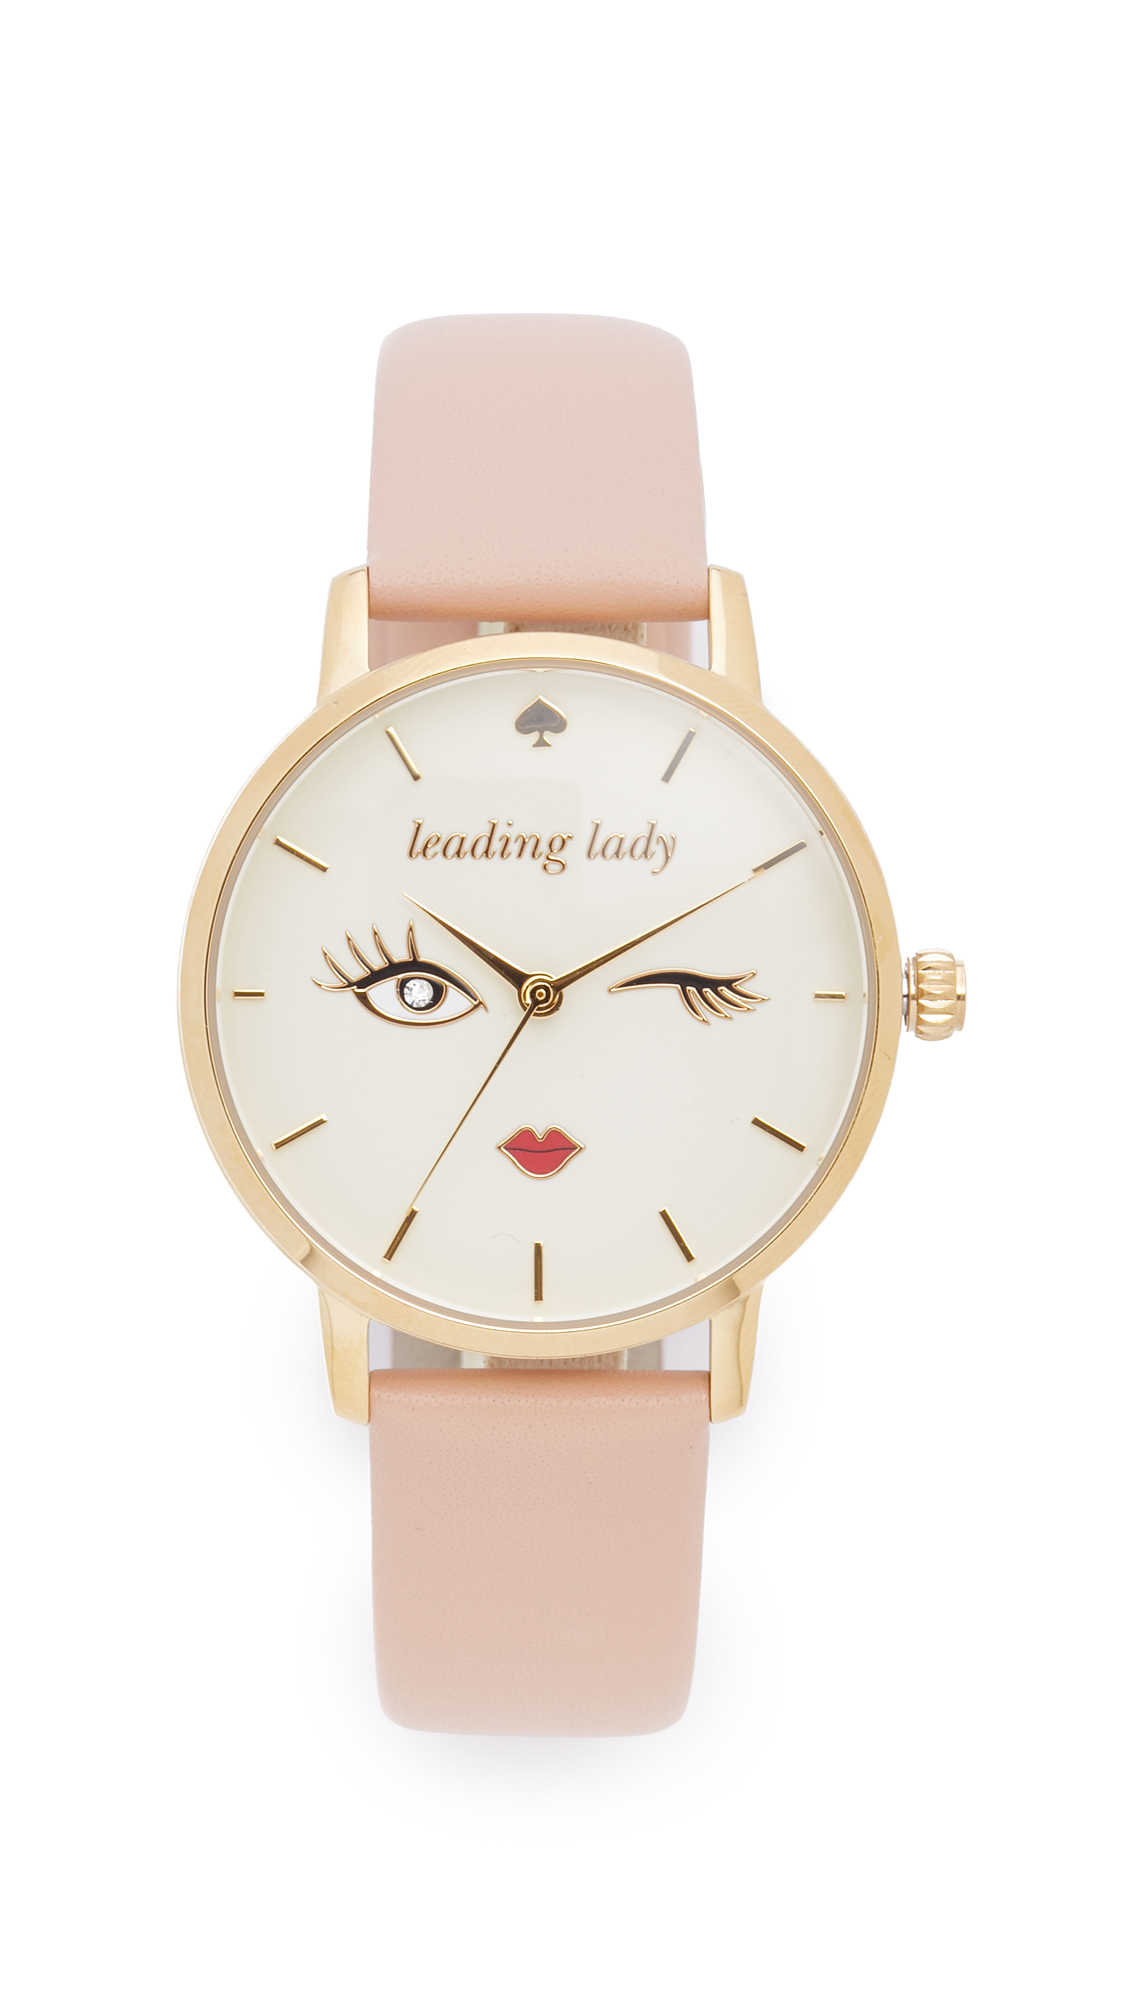 Kate Spade New York Metro Leading Lady Watch - Gold at Shopbop